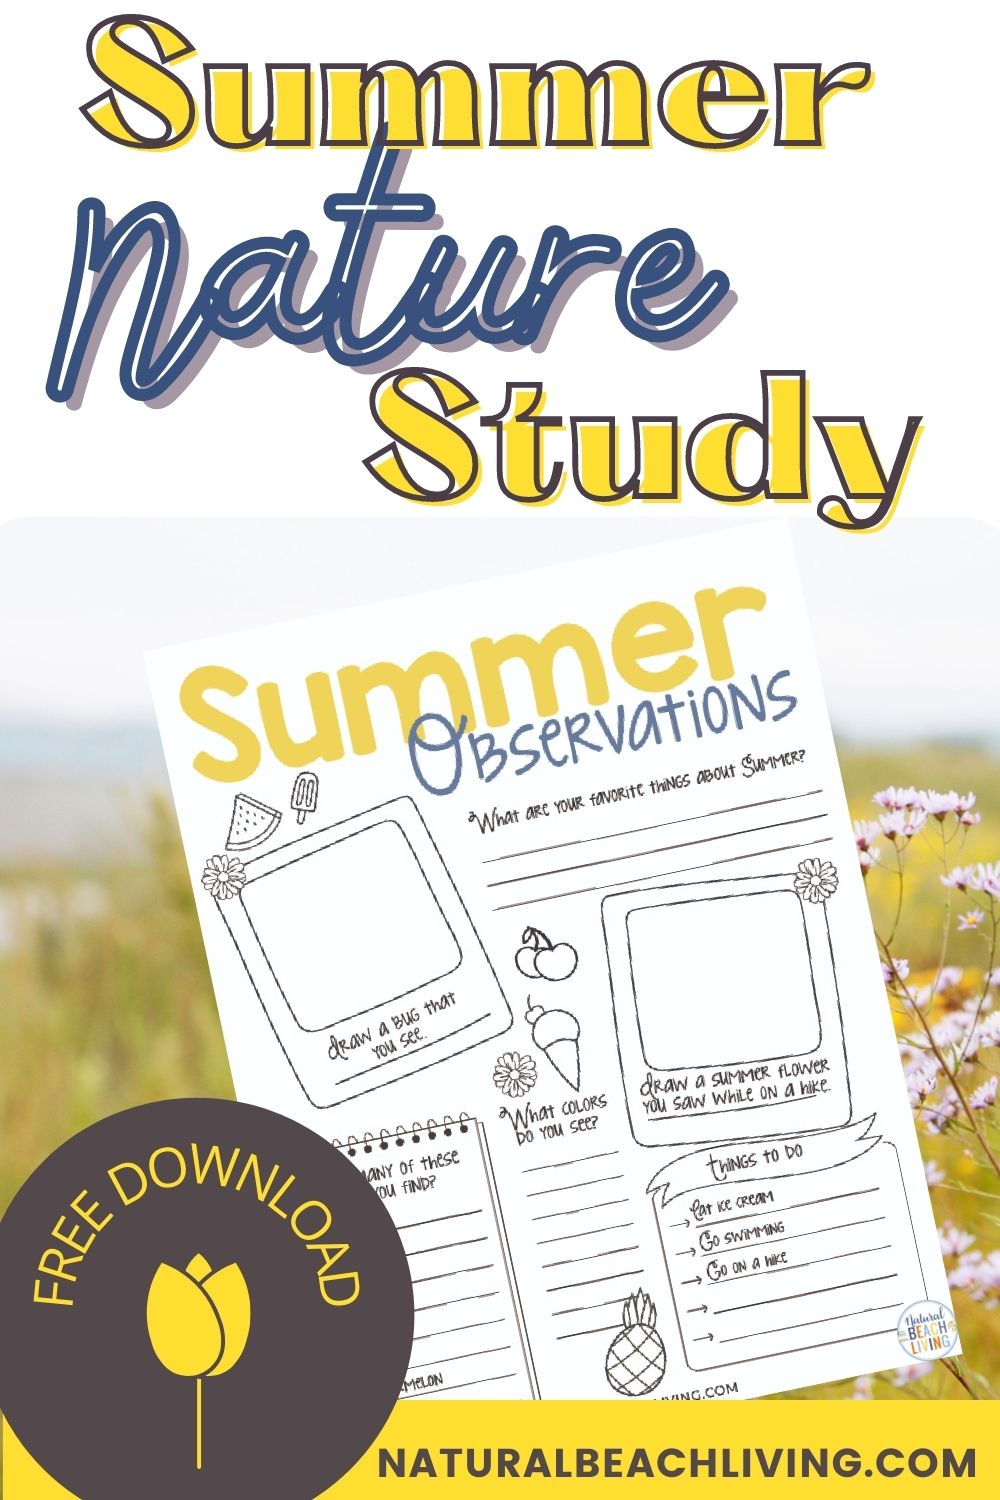 Summer Nature Study for Kids